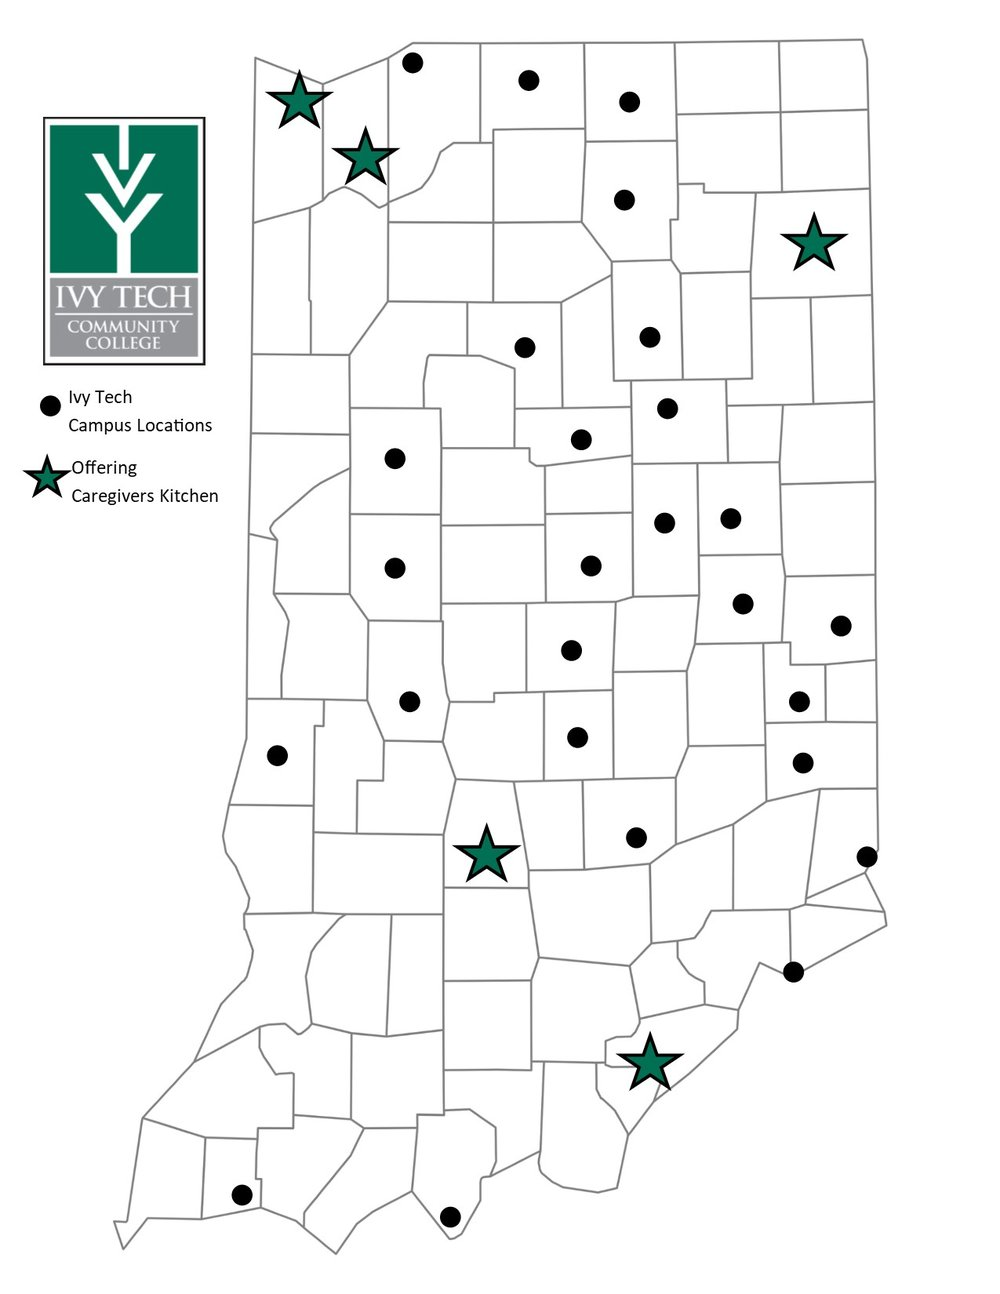 Ivy tech ck partnership locations.jpg